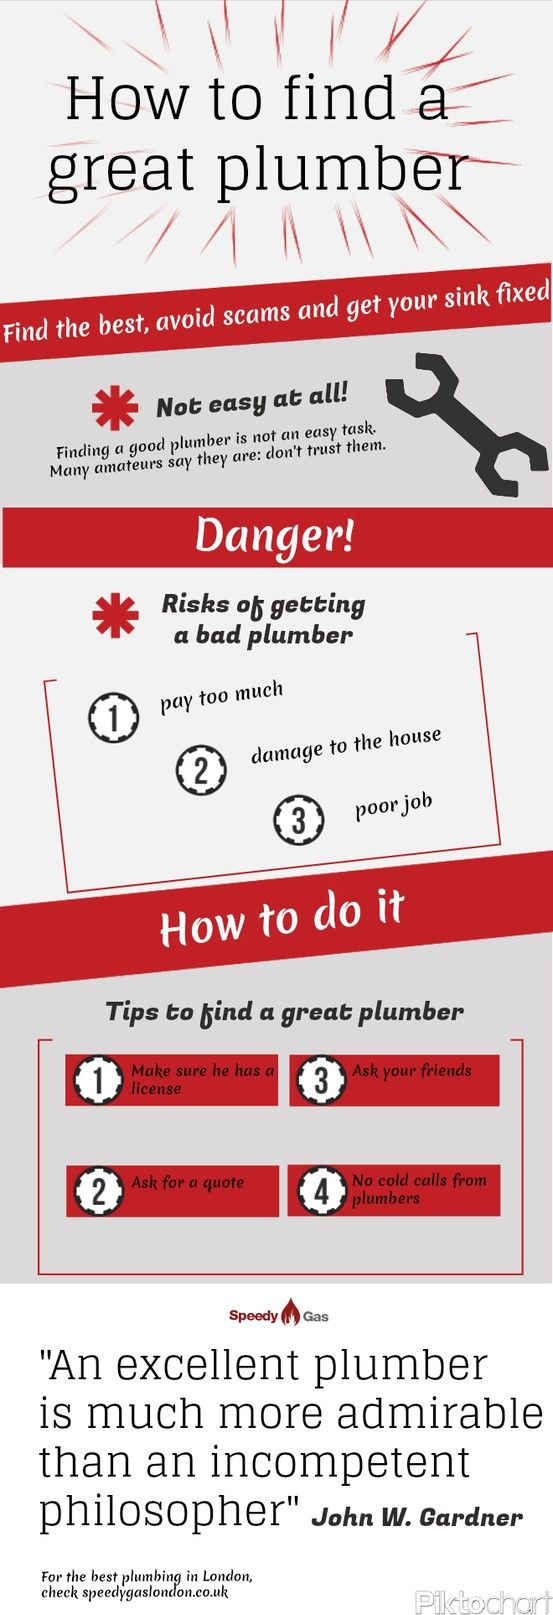 65 best heating engineers info graphics images on pinterest boiler how to find a great plumber were right here call mr fandeluxe Image collections